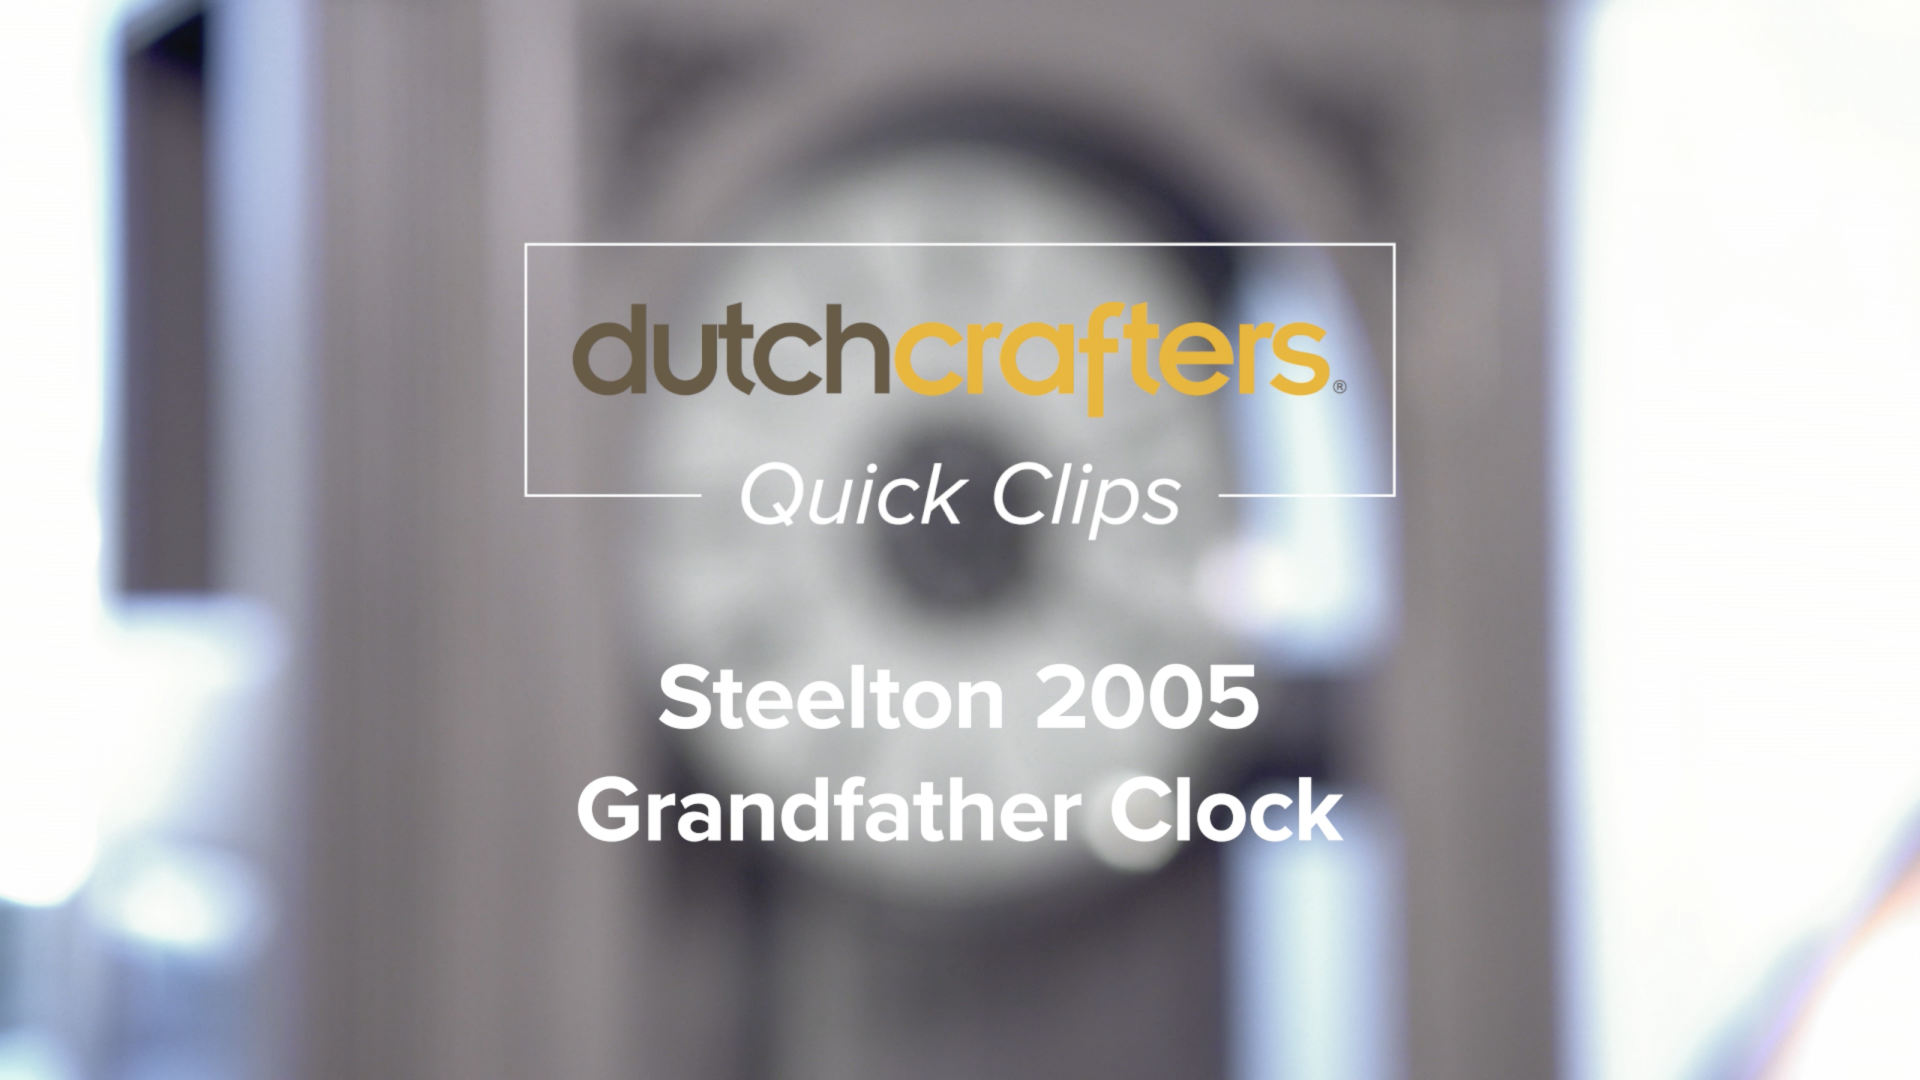 Steelton-Grandfather-Clock-Video-Title